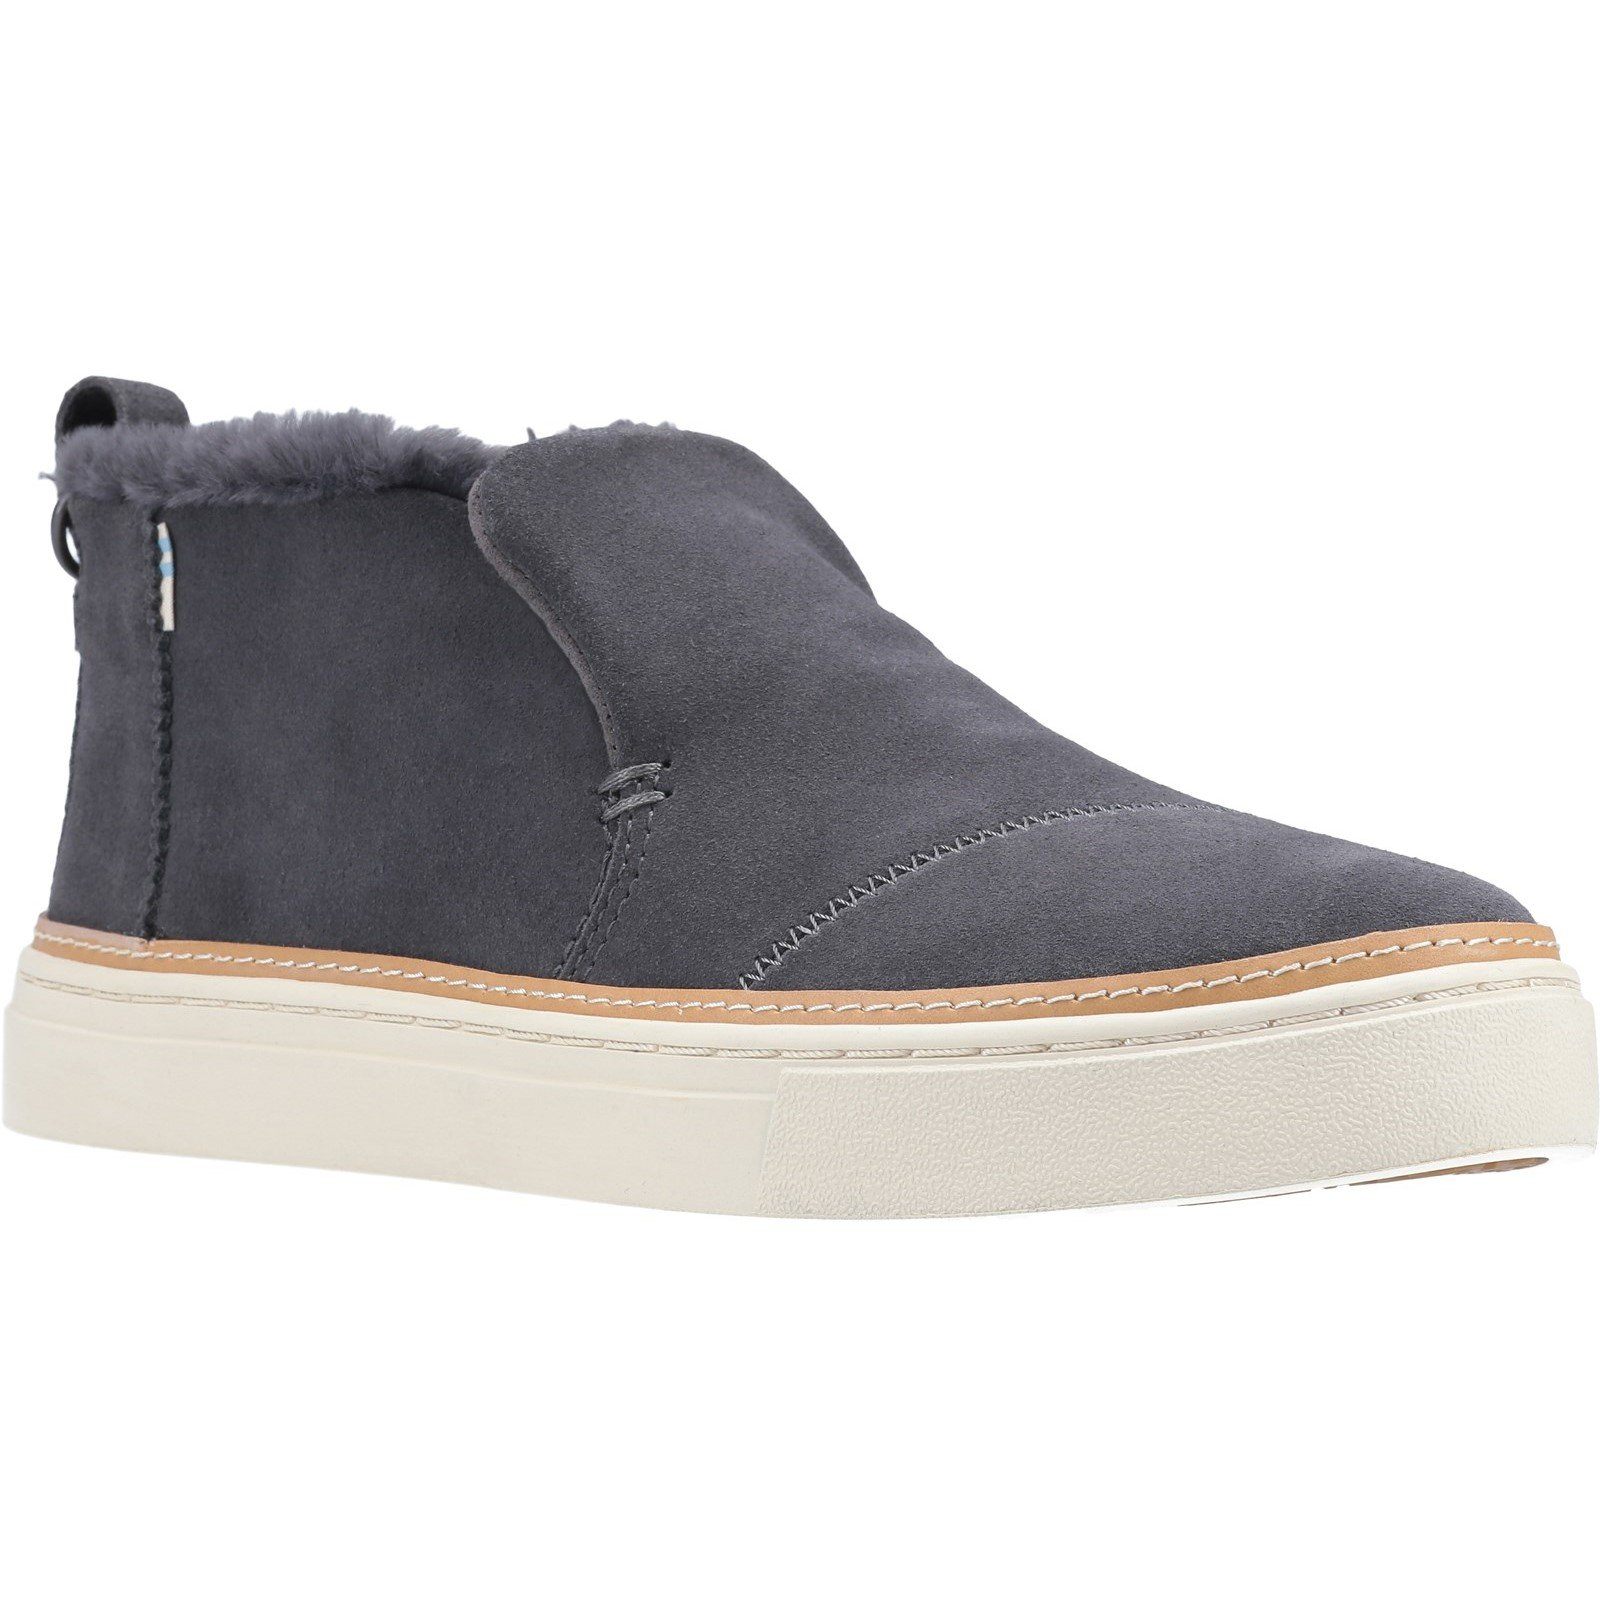 Hush Puppies Men's Paxton Chelsea Boot Various Colours 32882 - Gry Suede/Faux Shearling 5